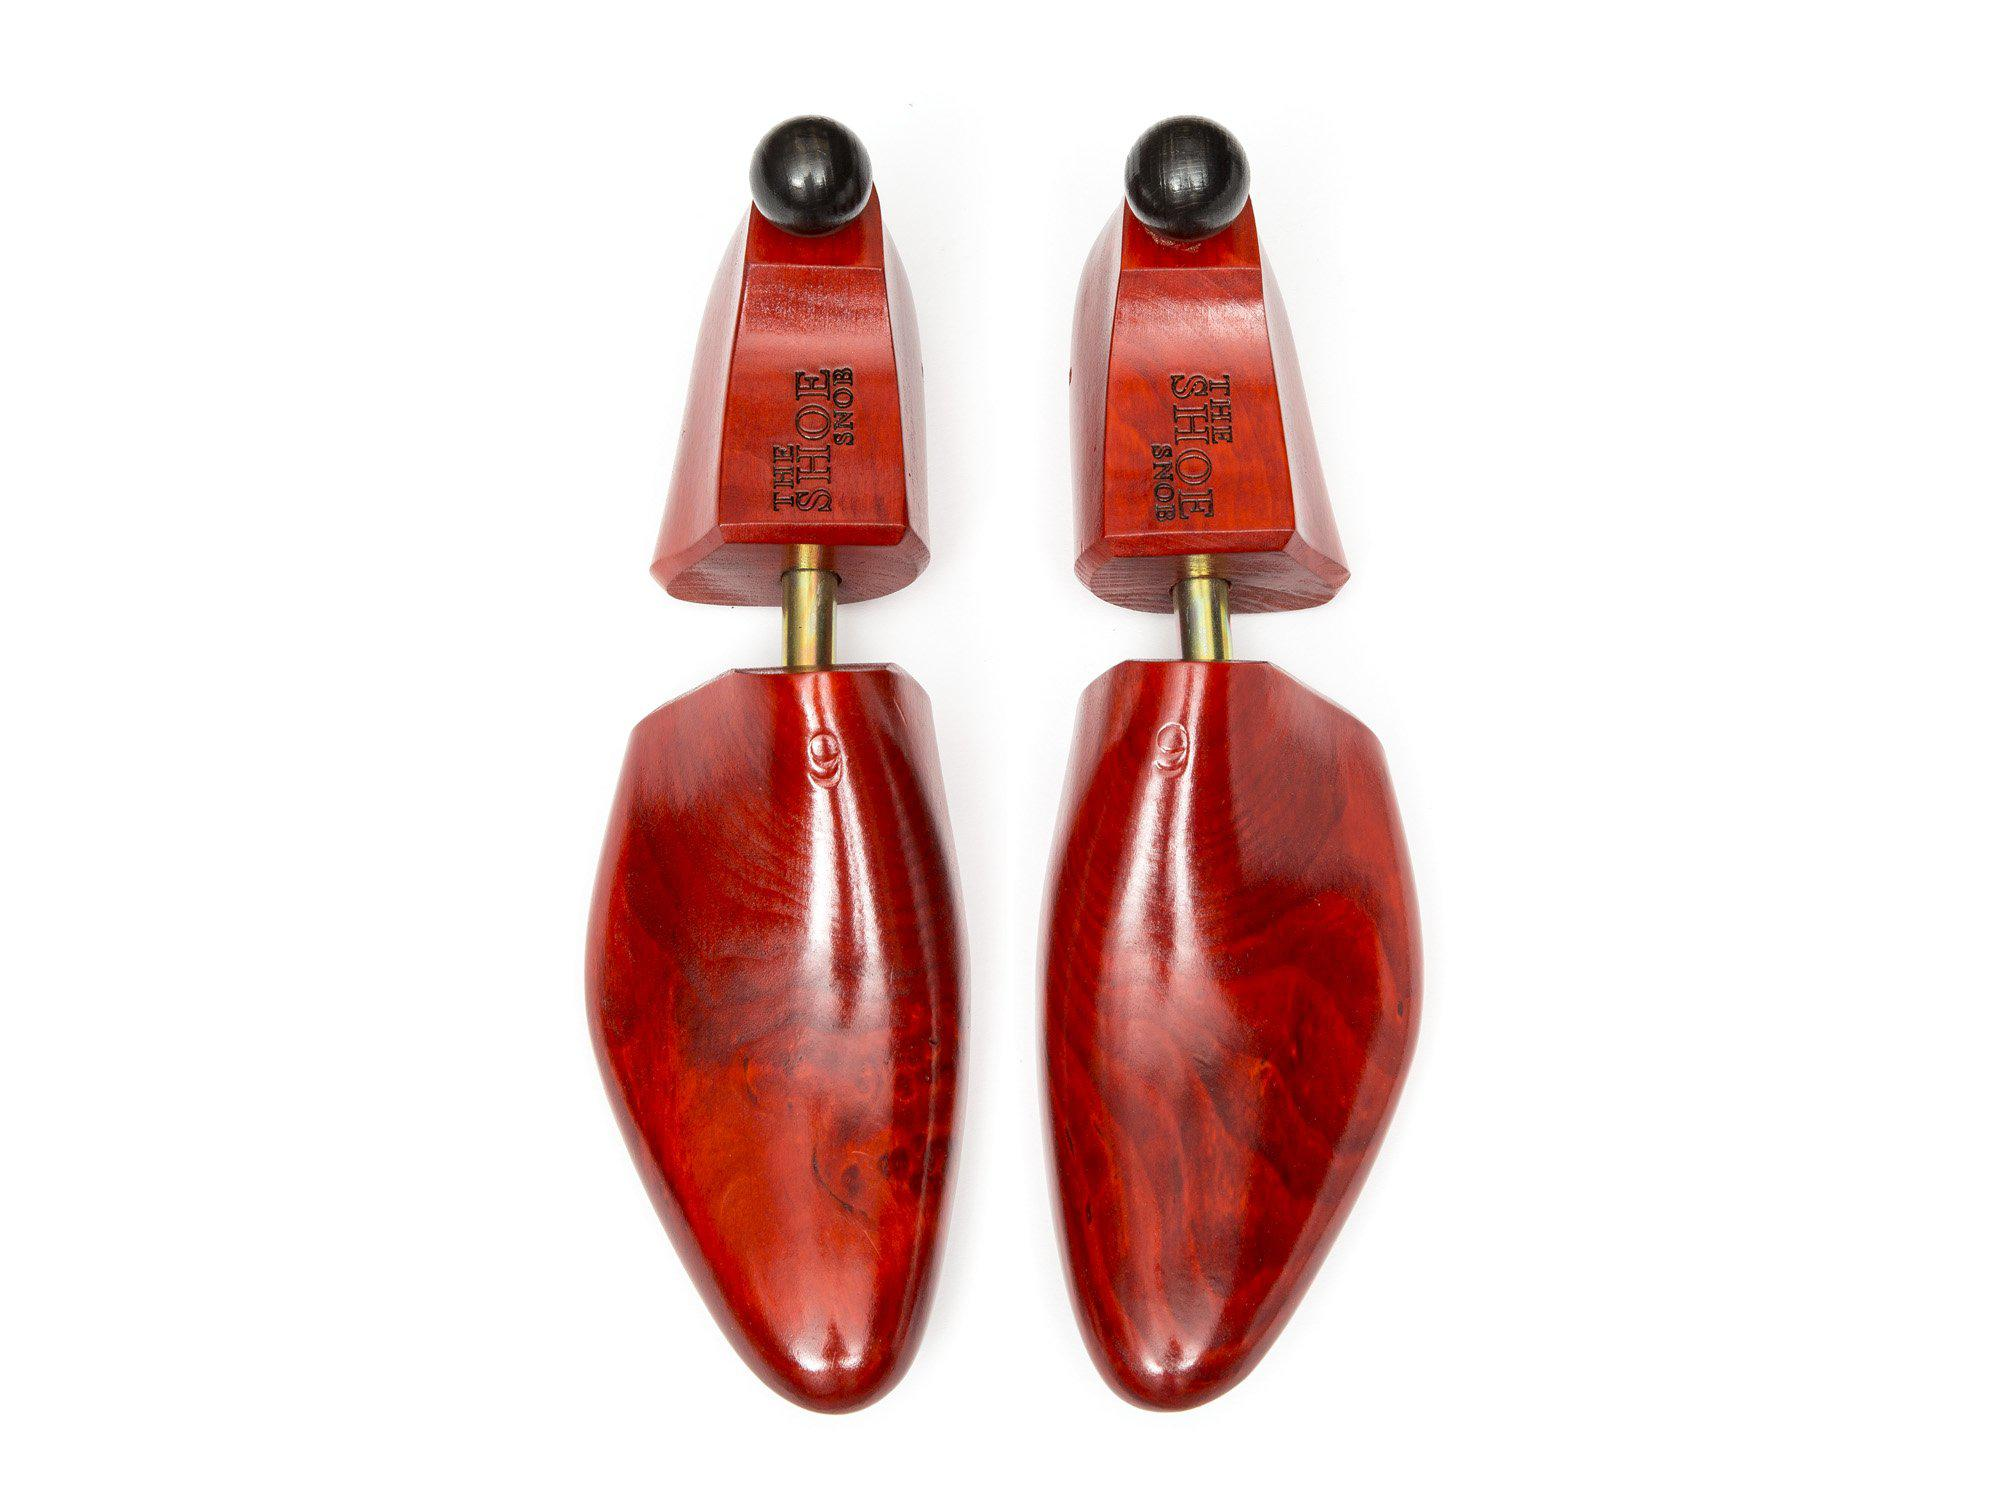 J.FitzPatrick Footwear - Alderwood Shoe Trees - Single